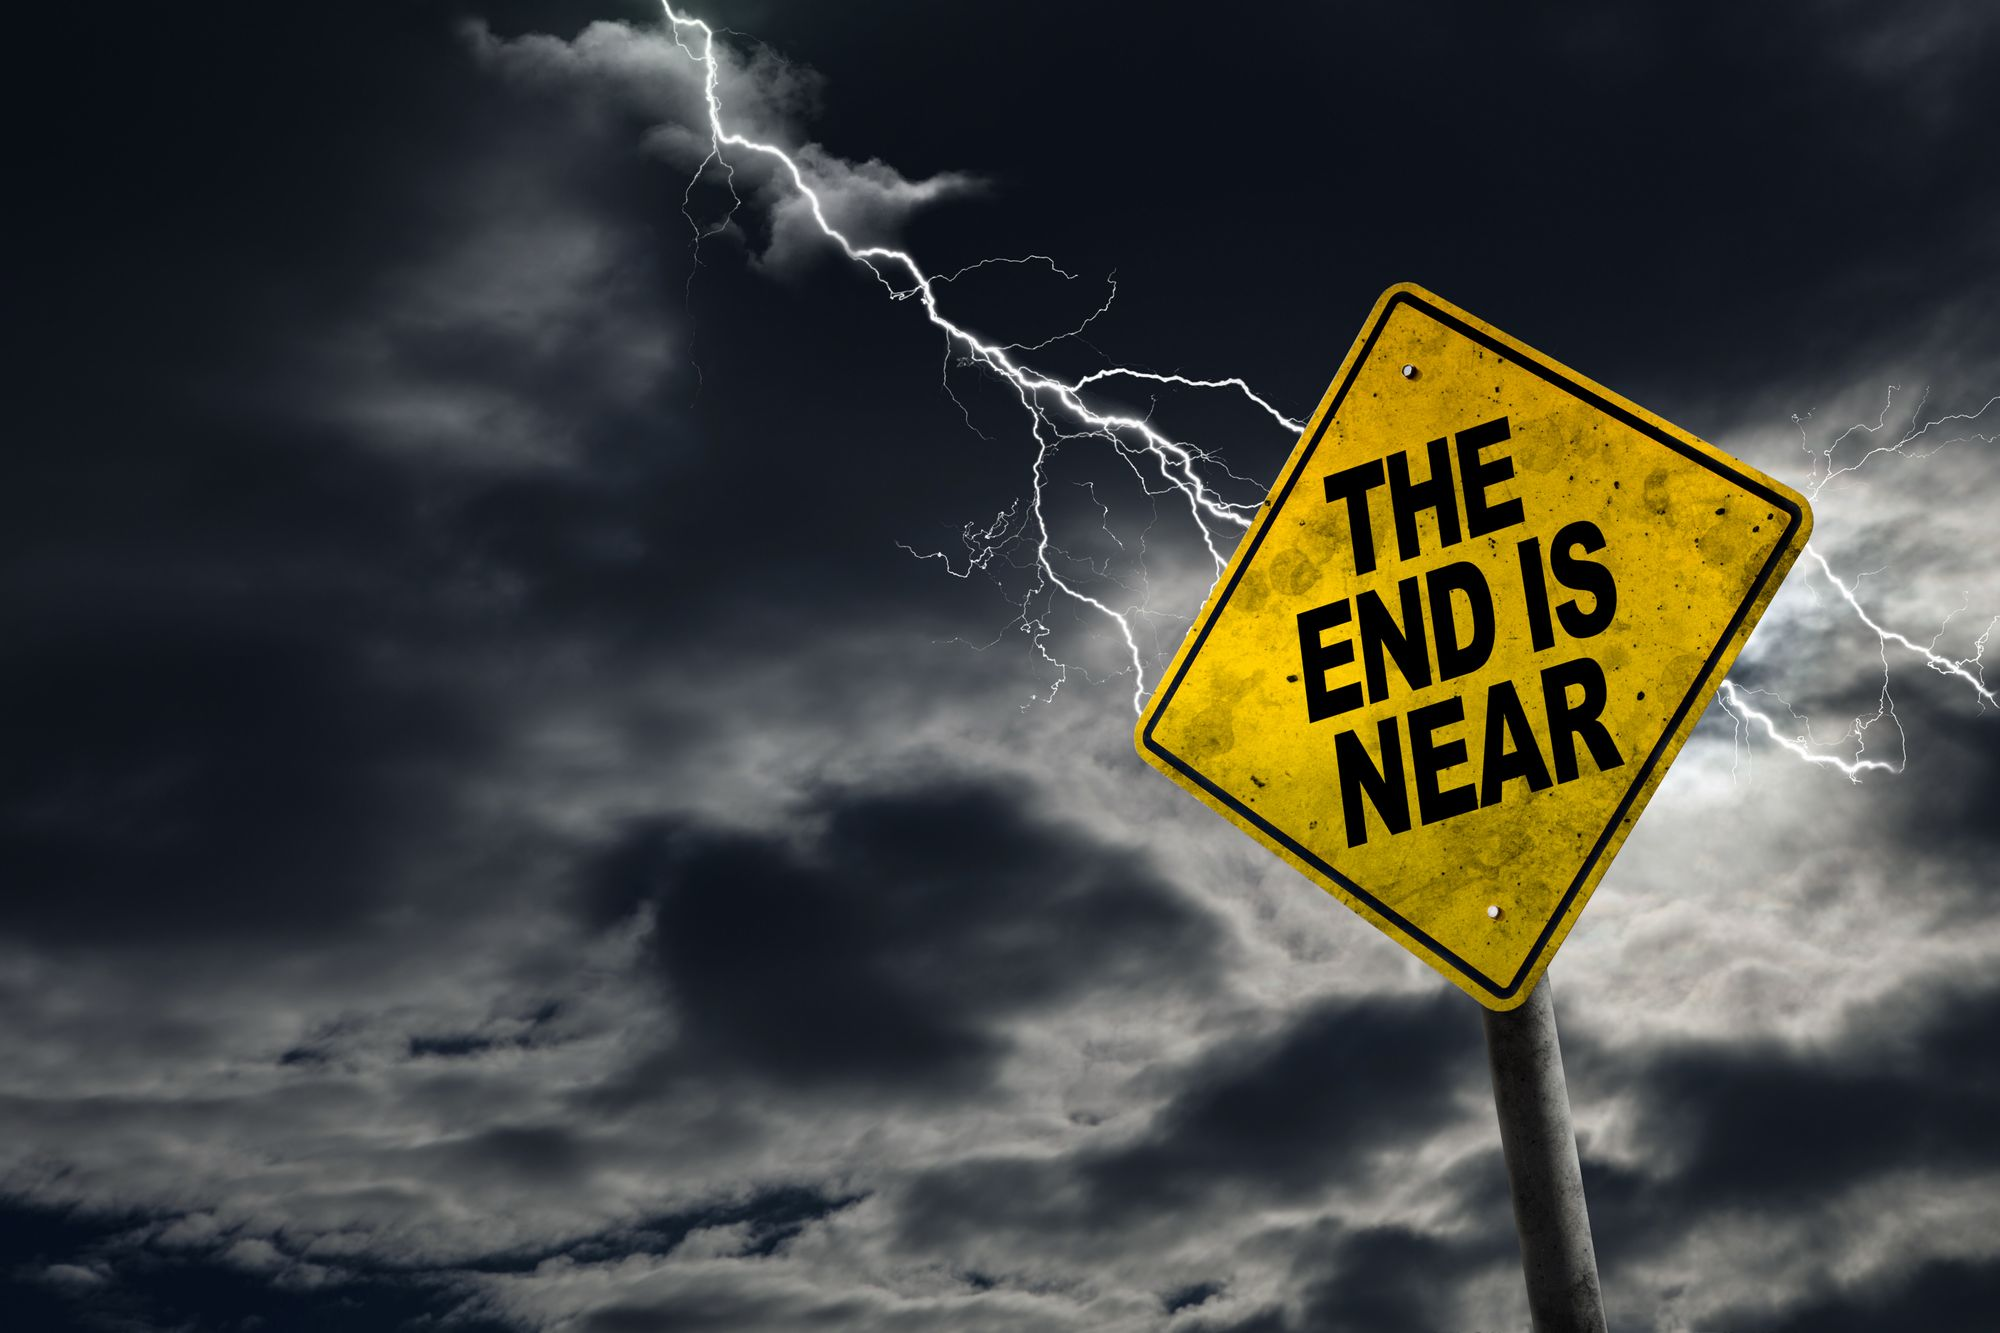 The End (of the Sprint) is Near!